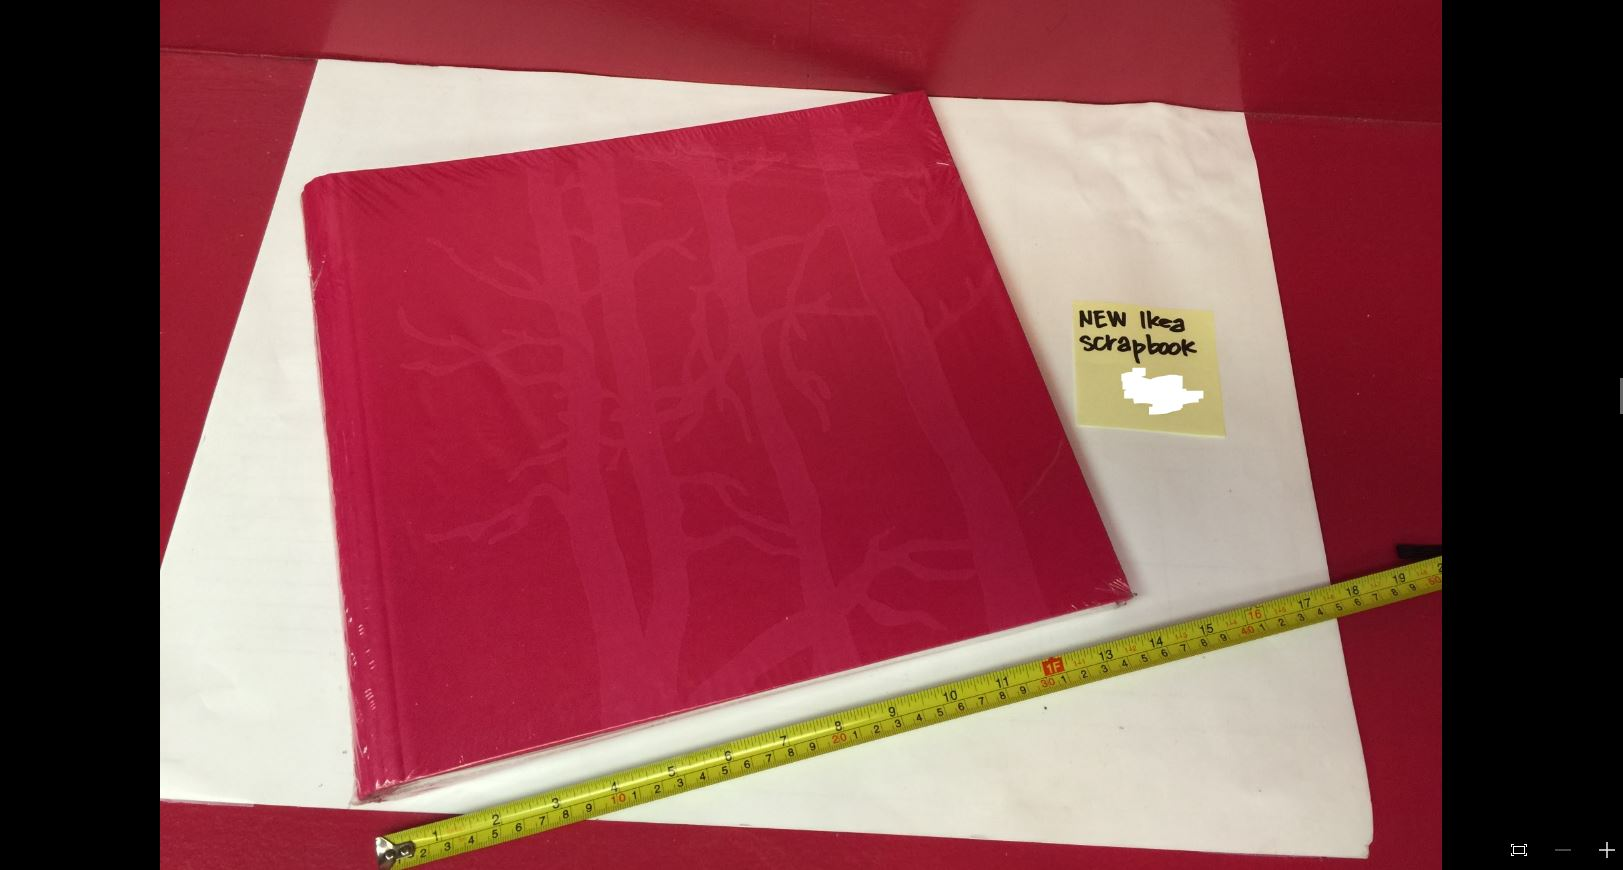 New IKEA Scrapbook, pink